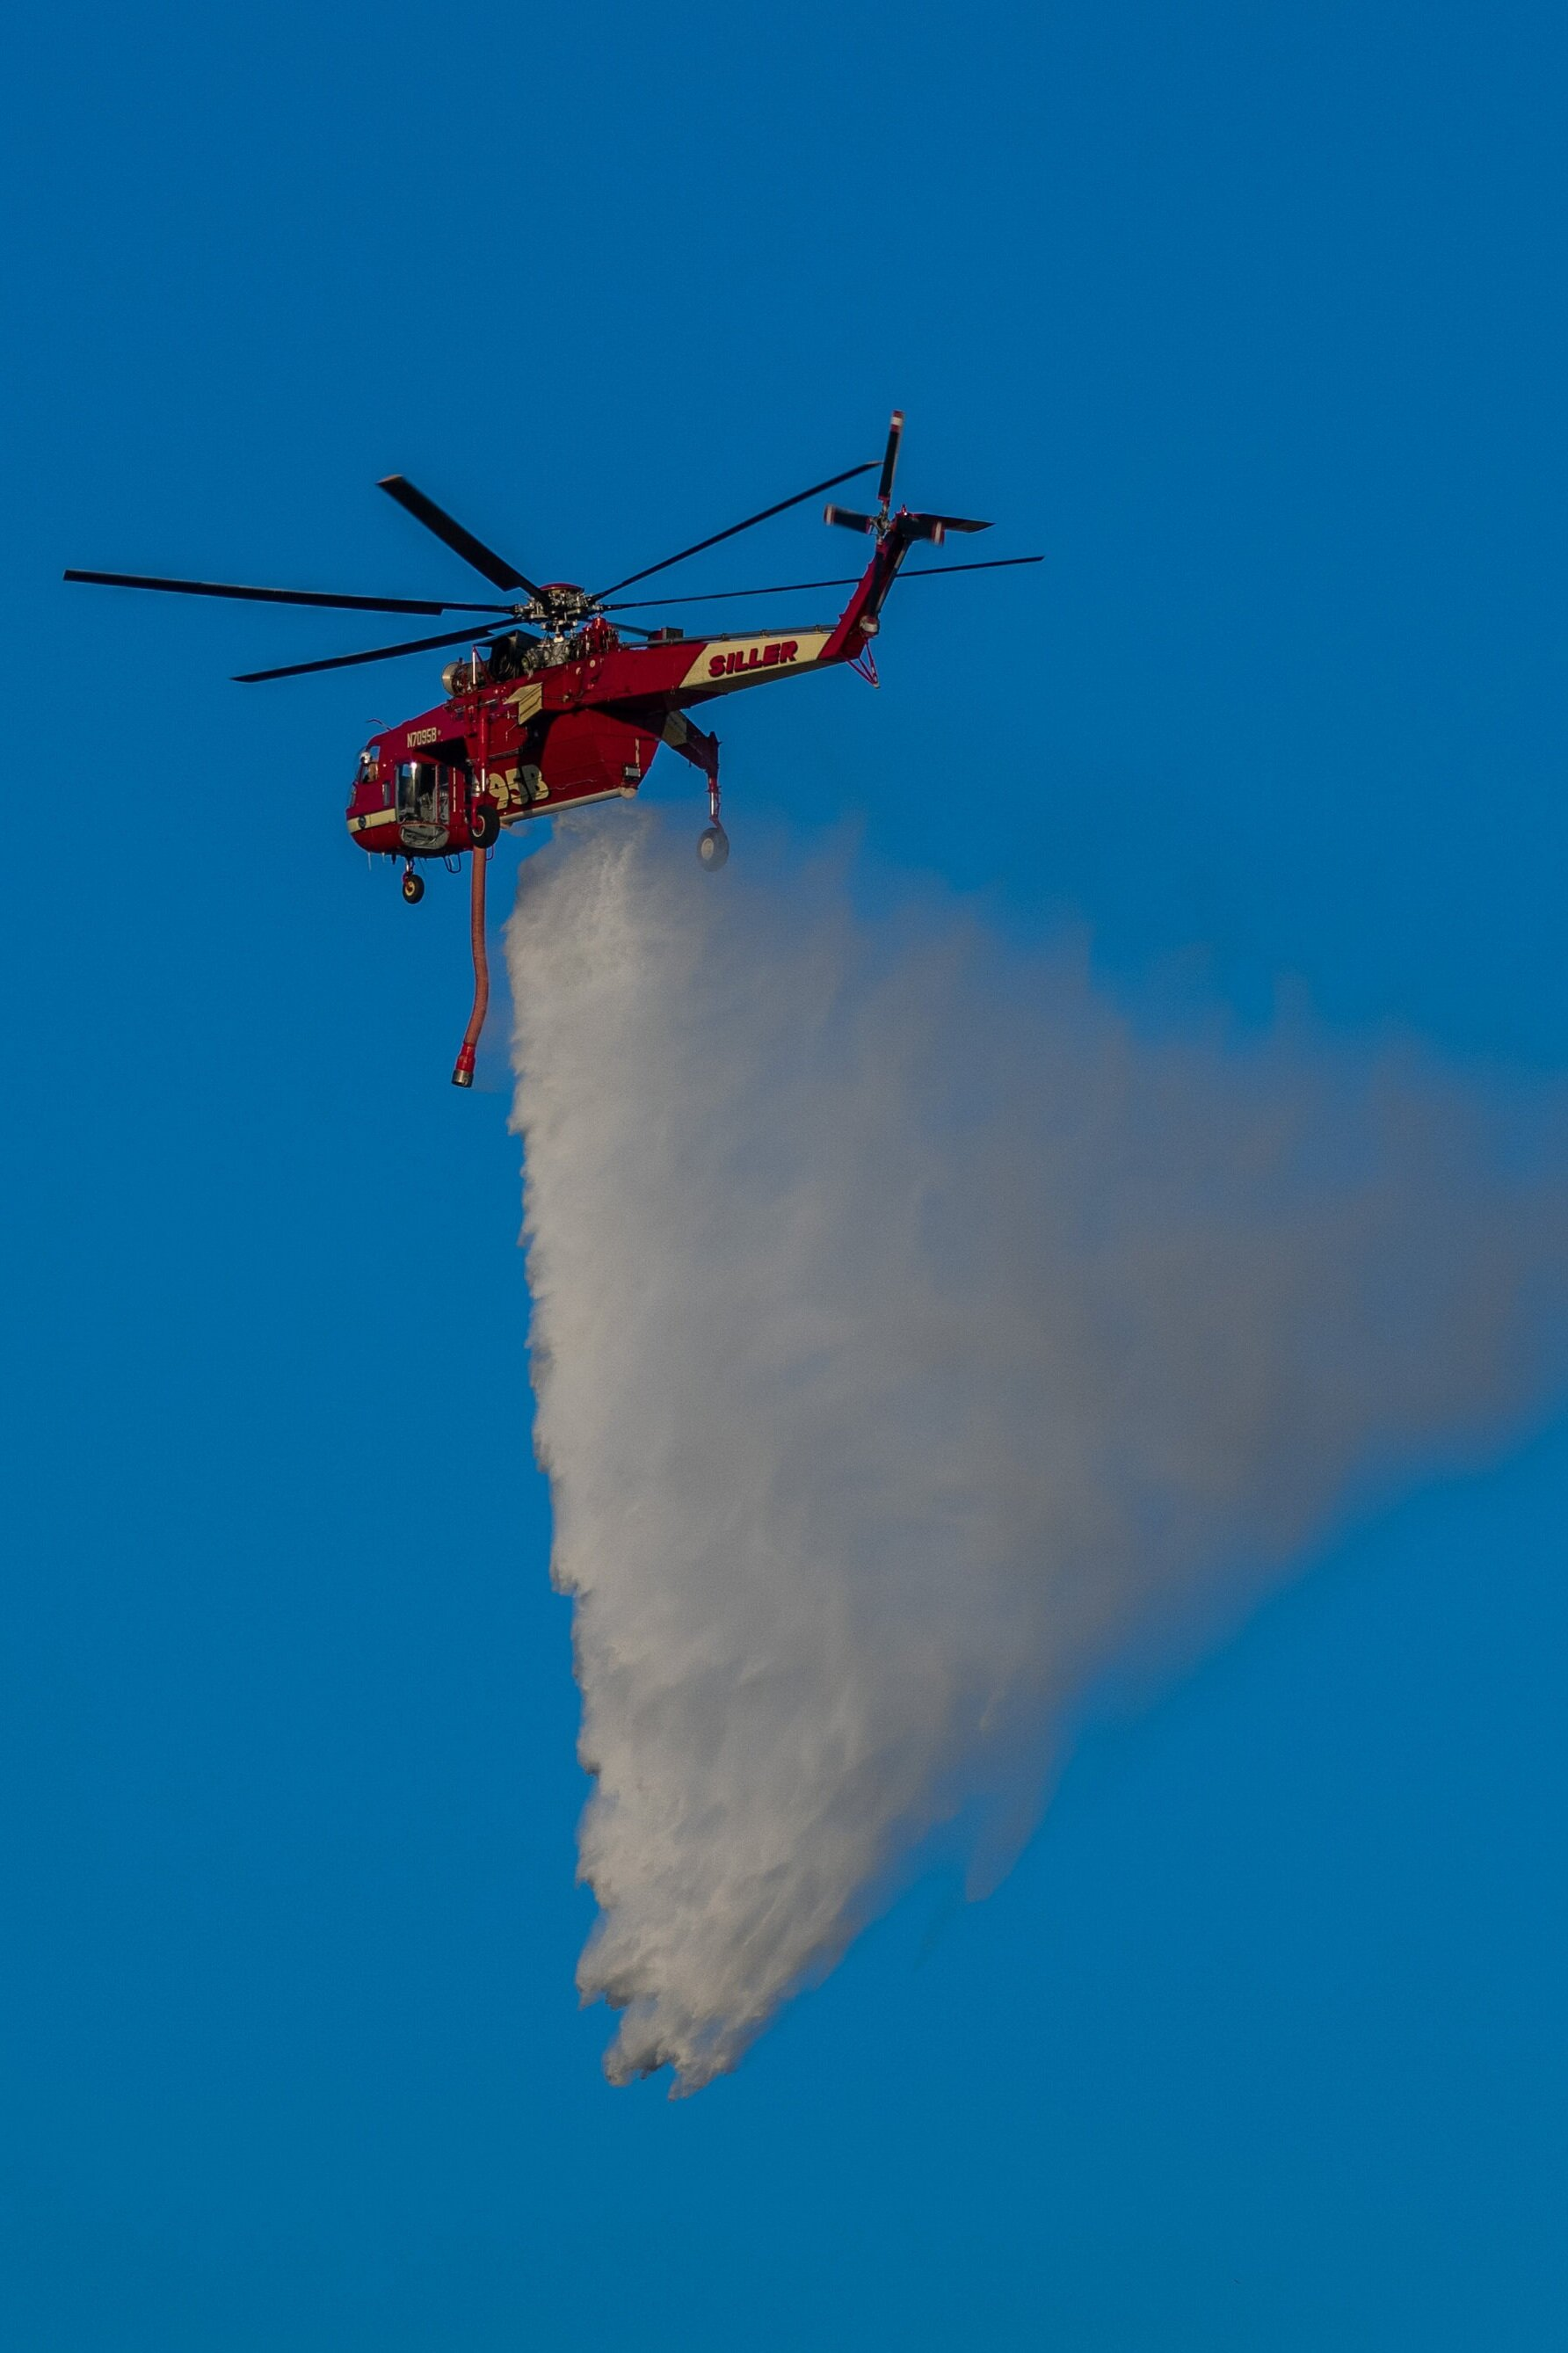 A helitanker dropping water on a part of the Saddlerige Fire near Newhall Calif. on Friday, Oct. 11, 2019. (Conner Savage/The Corsair)